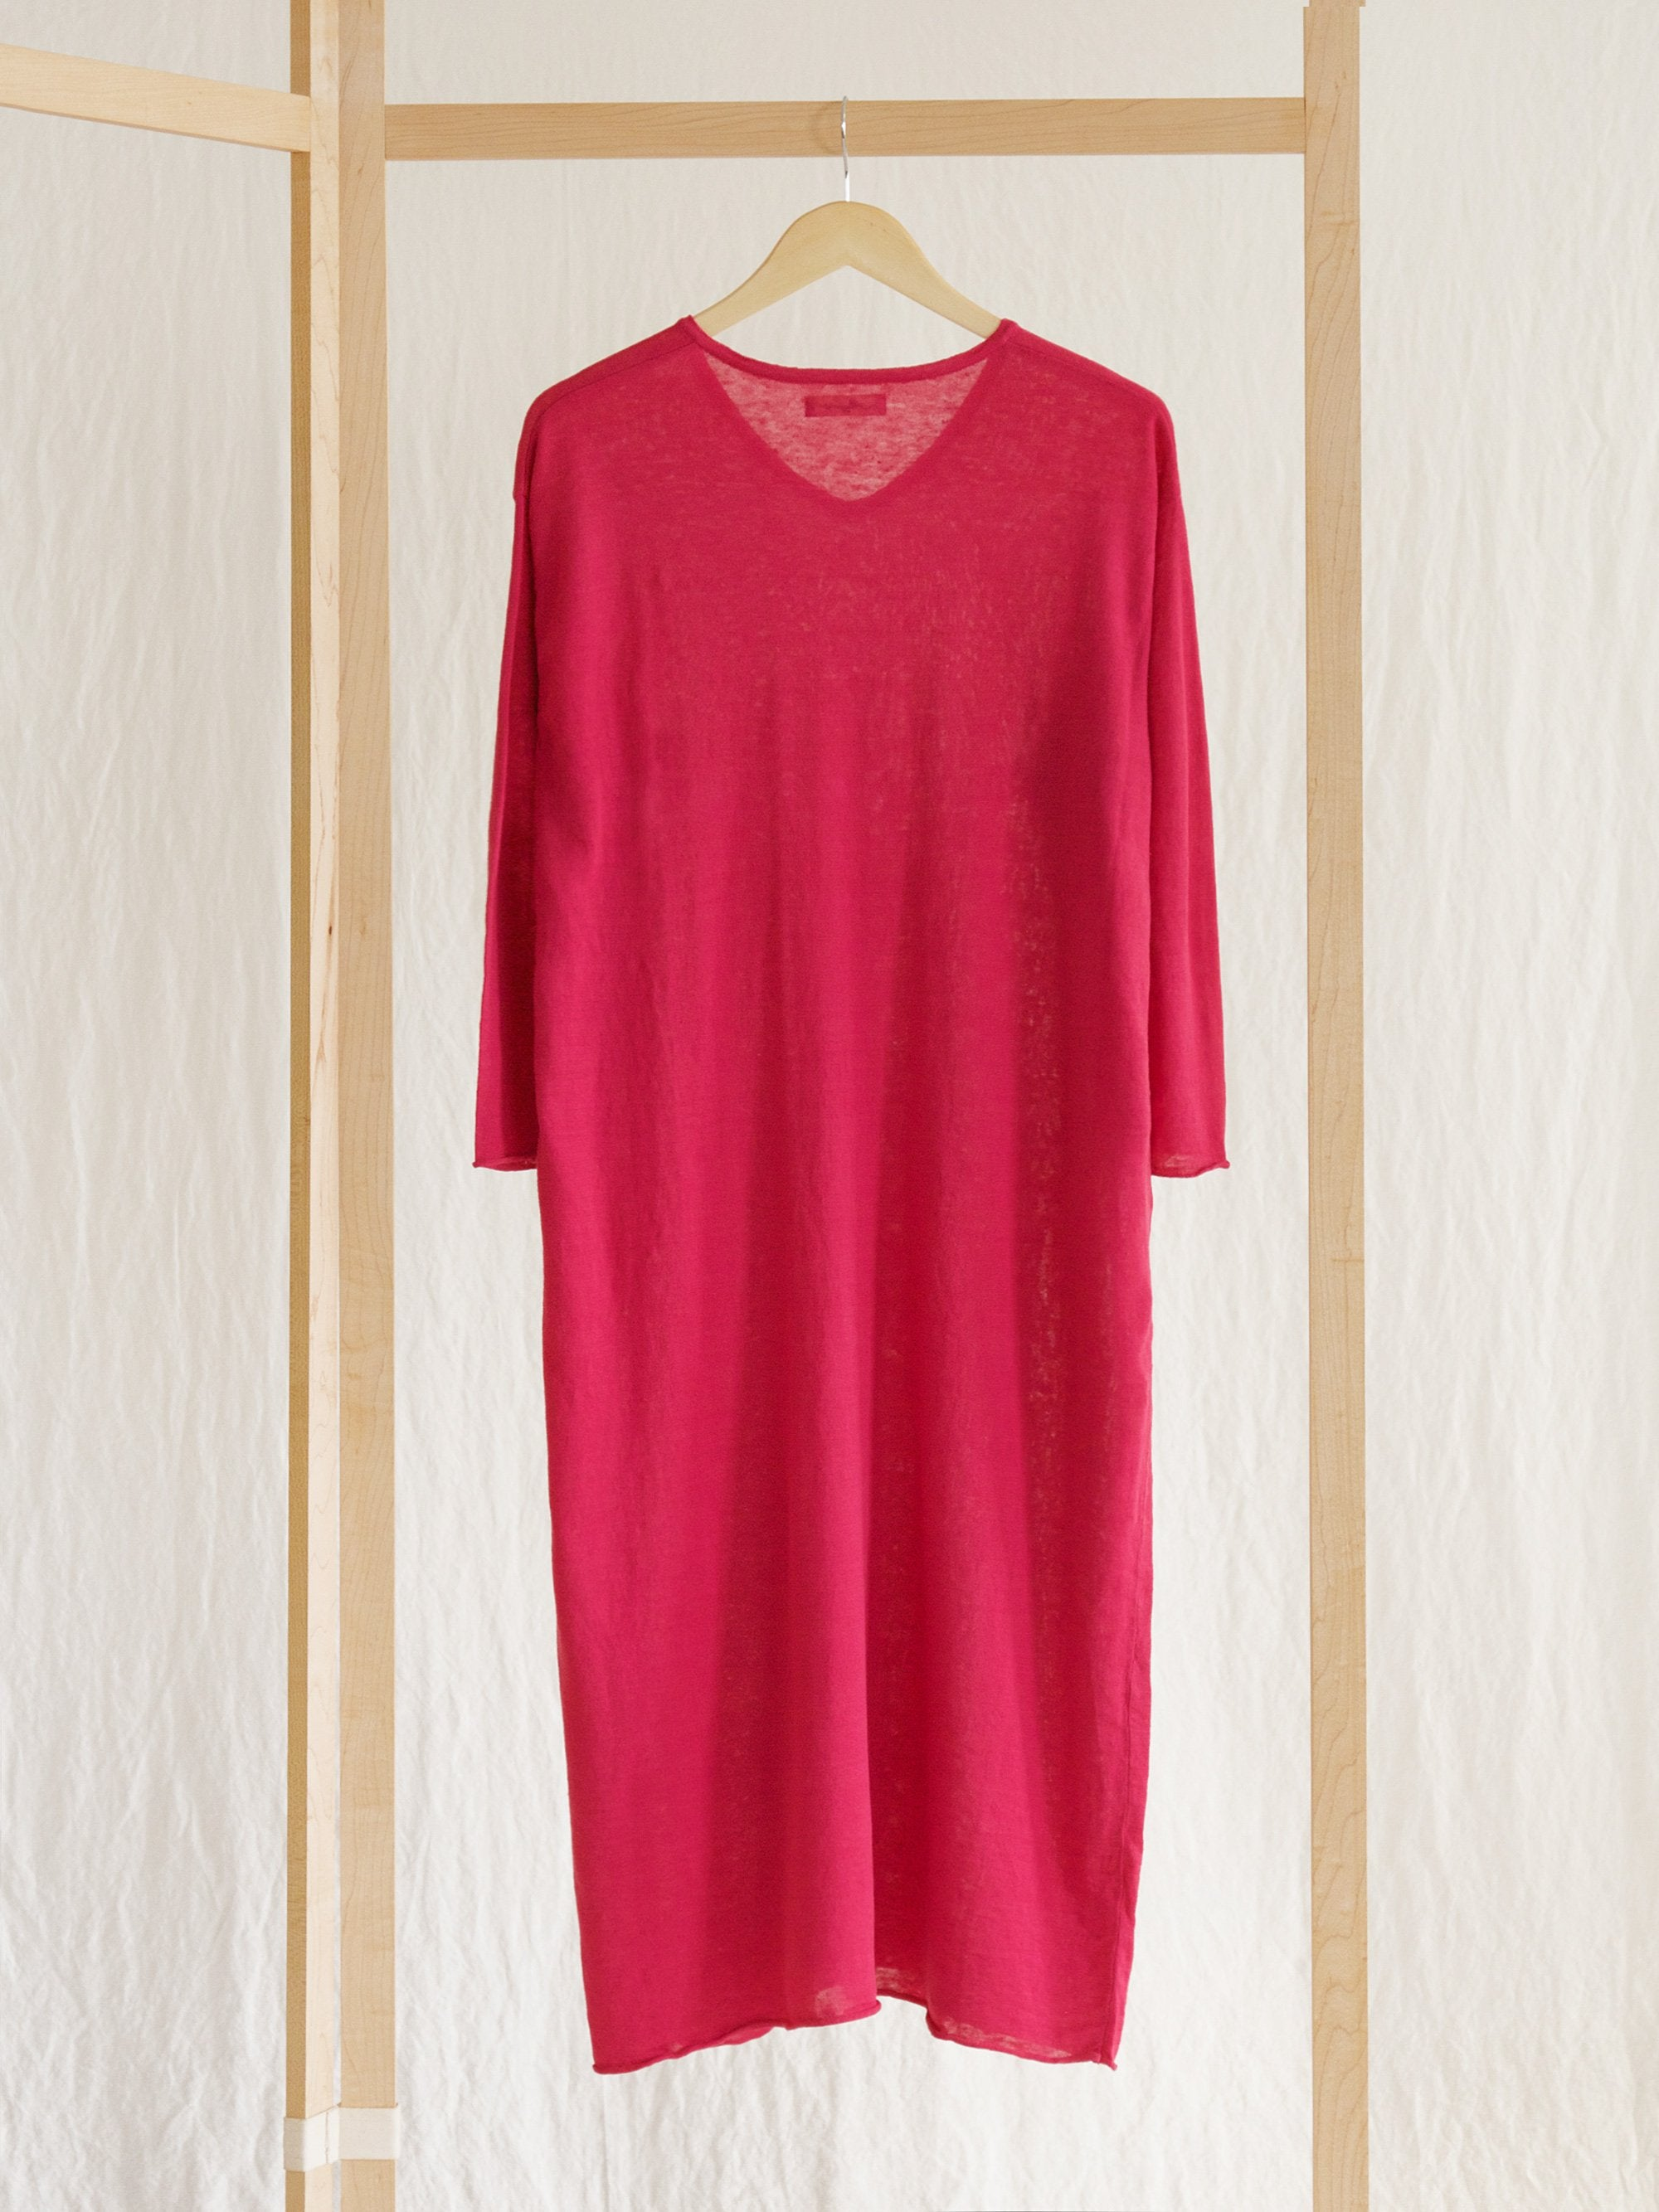 Namu Shop - Ichi Antiquites Linen V-Neck Dress - Pink